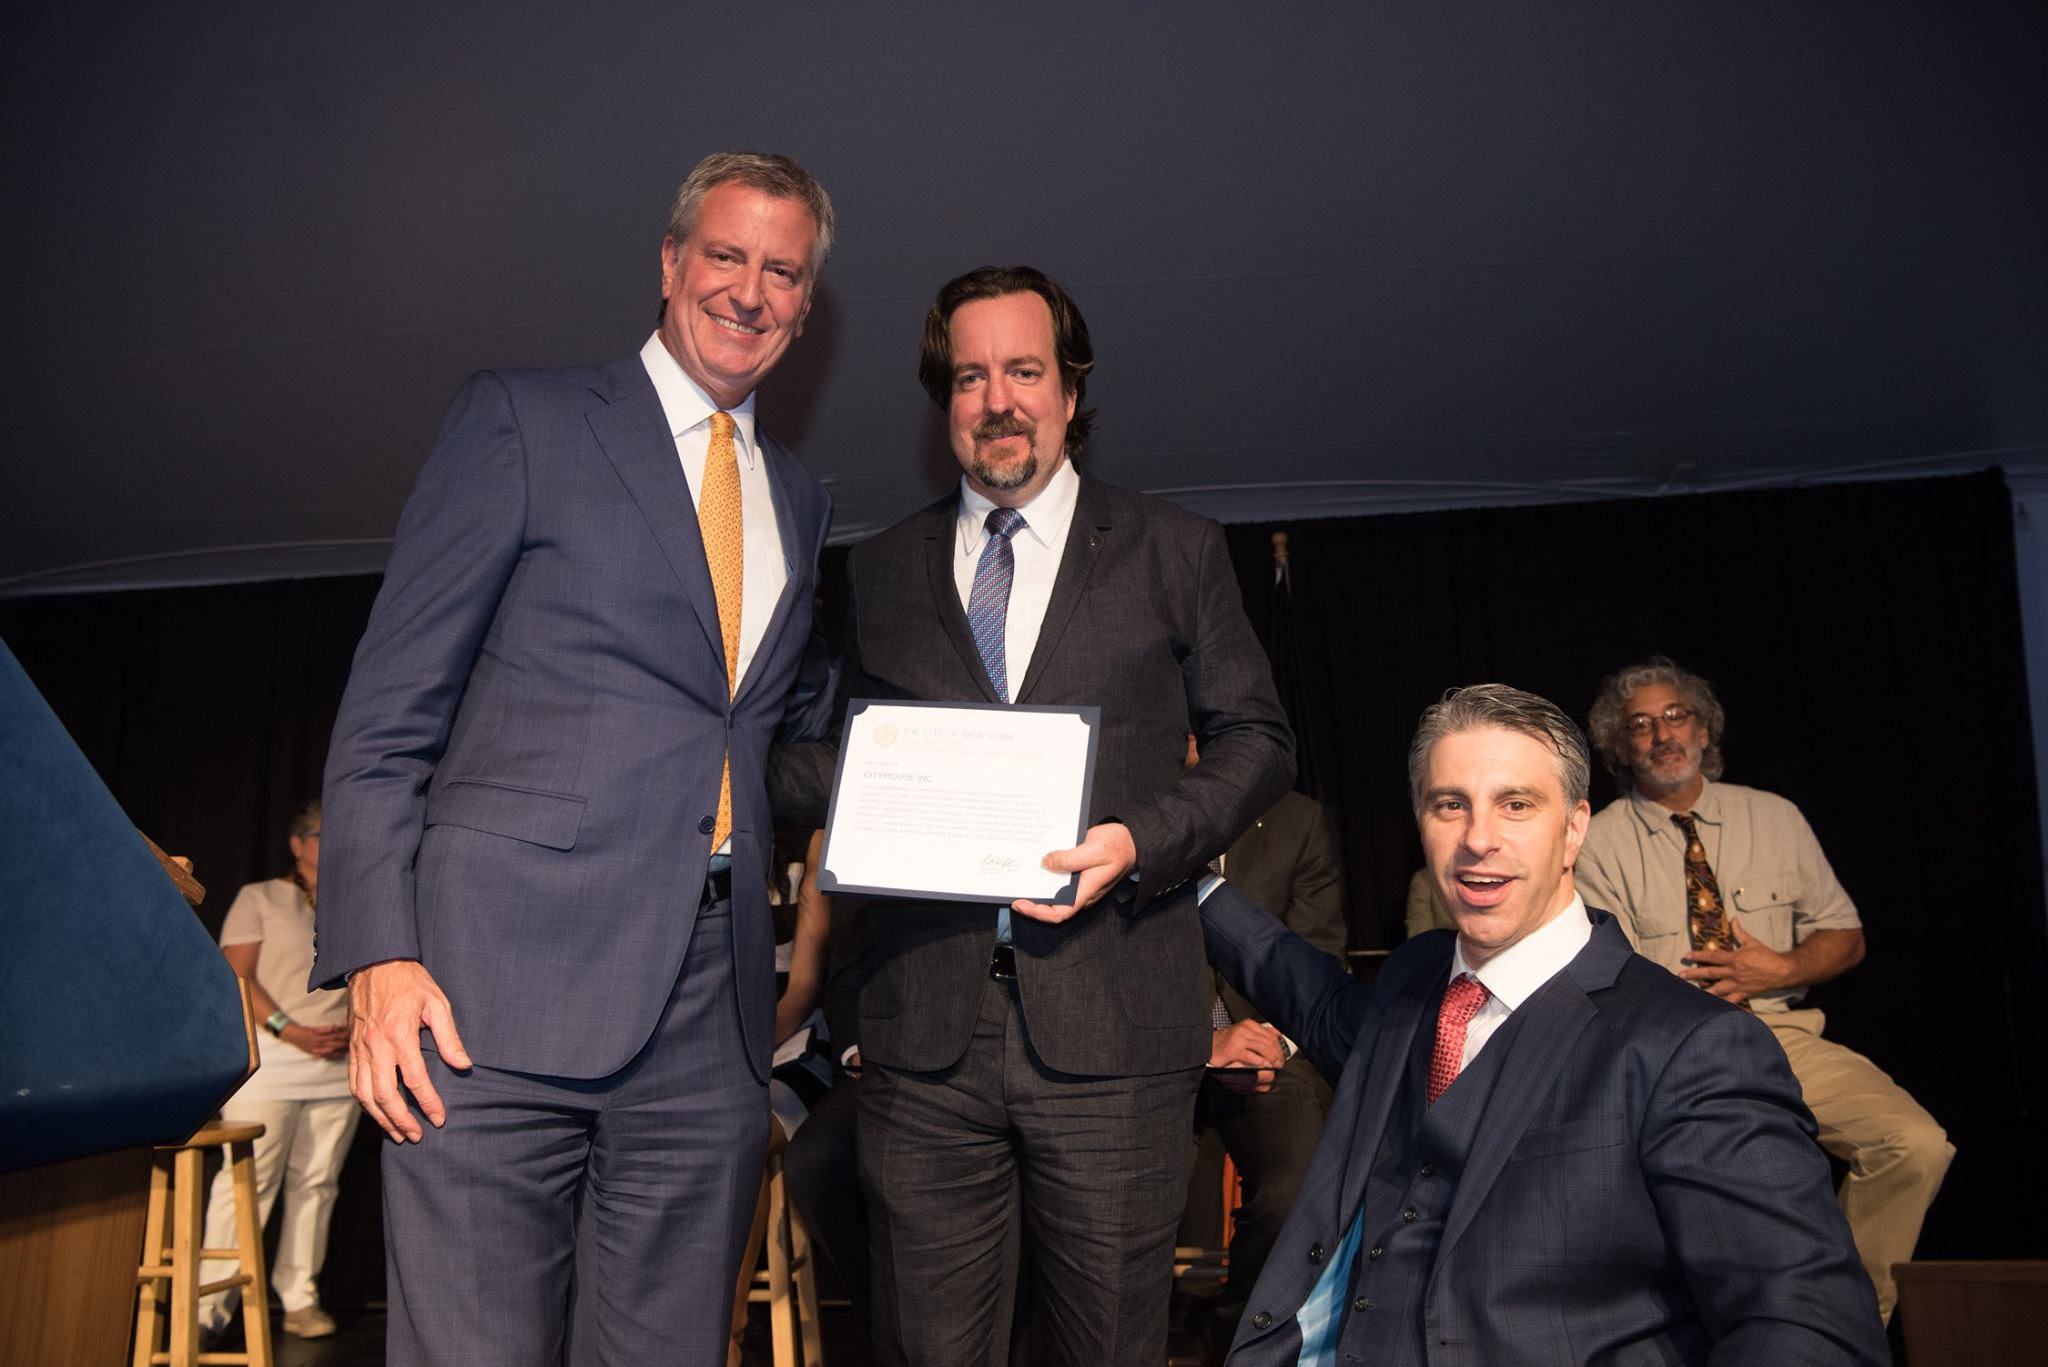 CityMouse, Inc. founder, John Kirkwood, is pictured receiving an award from New York City Mayor Bill De Blasio and Commissioner Victor Calise.